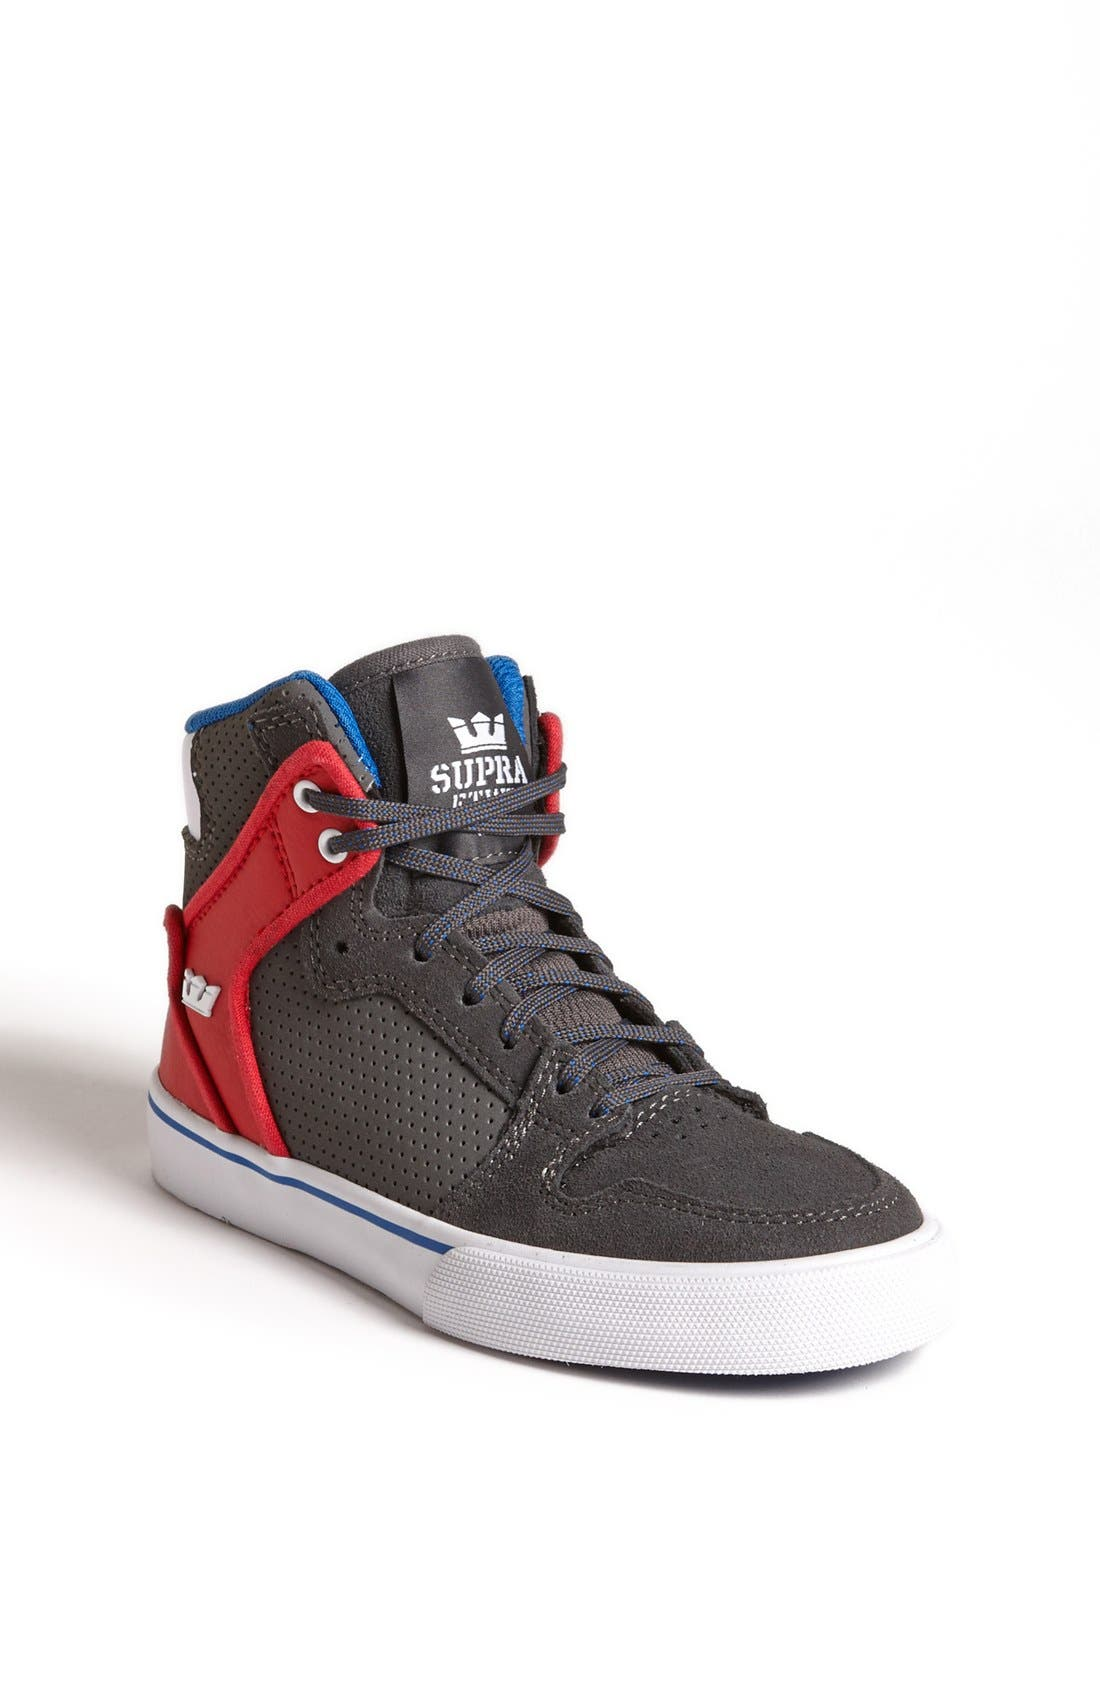 Alternate Image 1 Selected - Supra 'Vaider' Sneaker (Toddler, Little Kid & Big Kid)